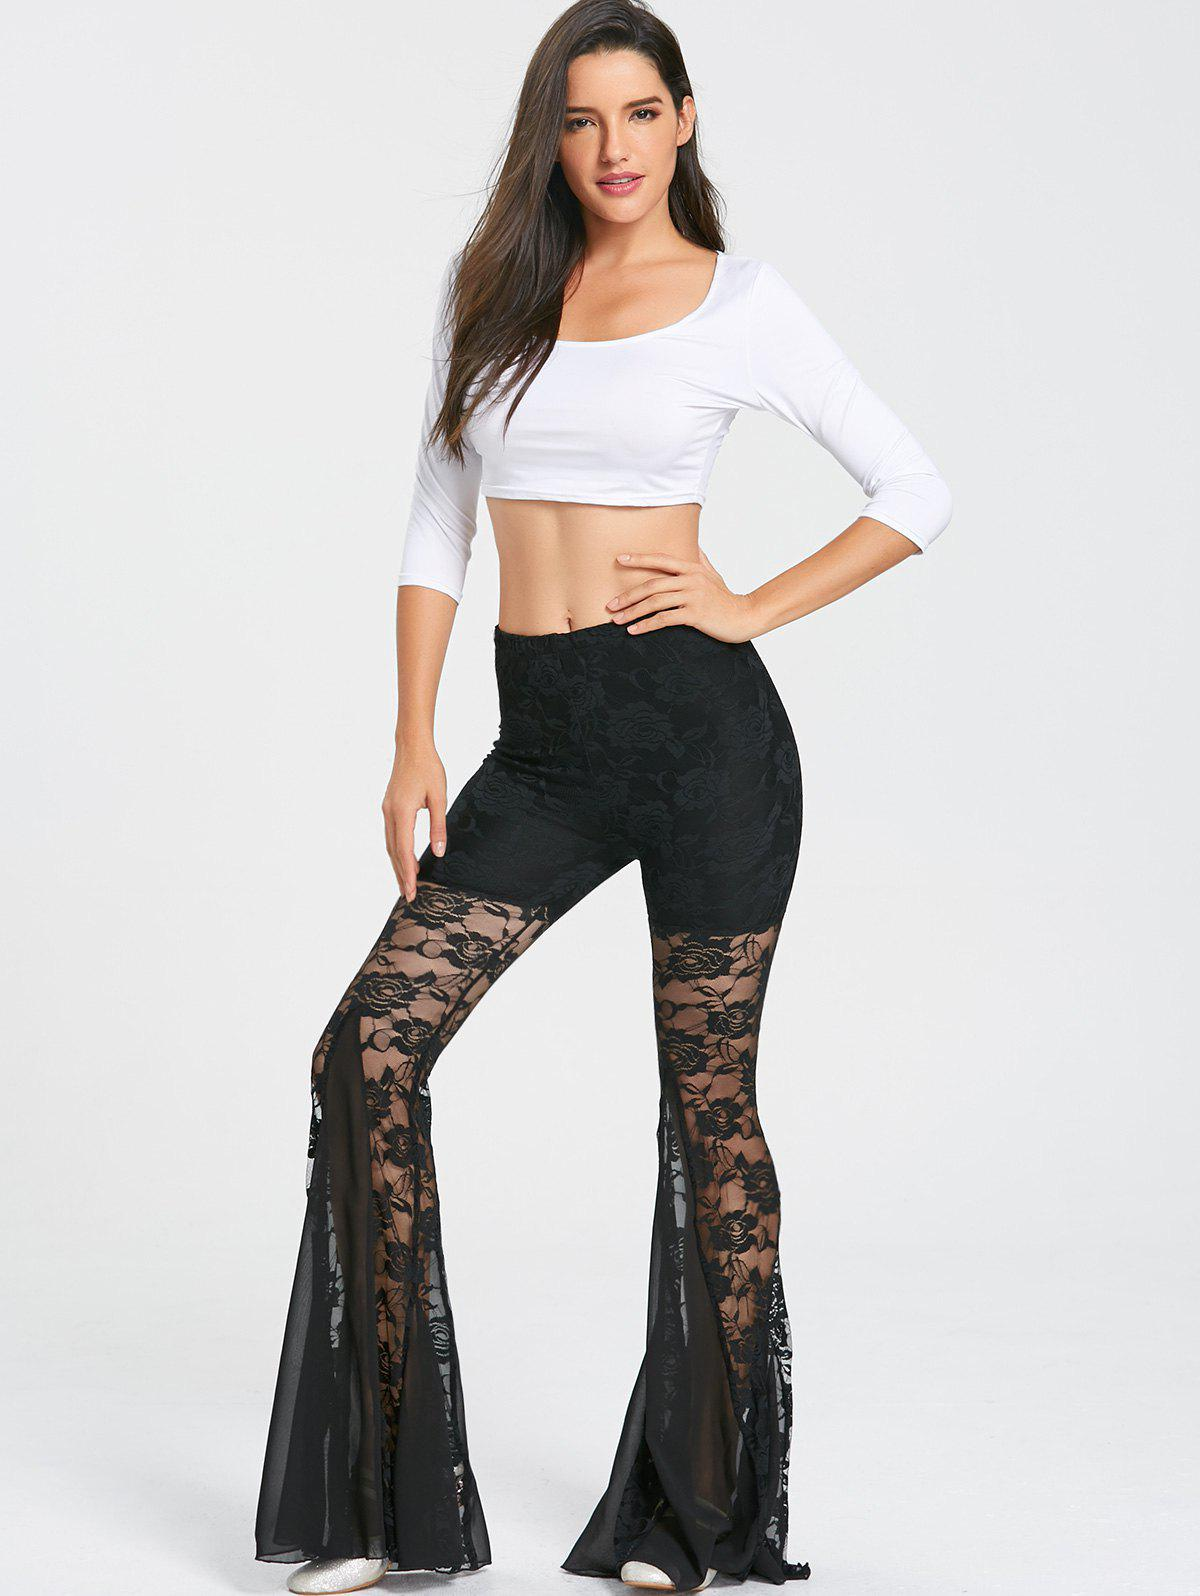 Lace Trim Dance Flare Pants - BLACK M